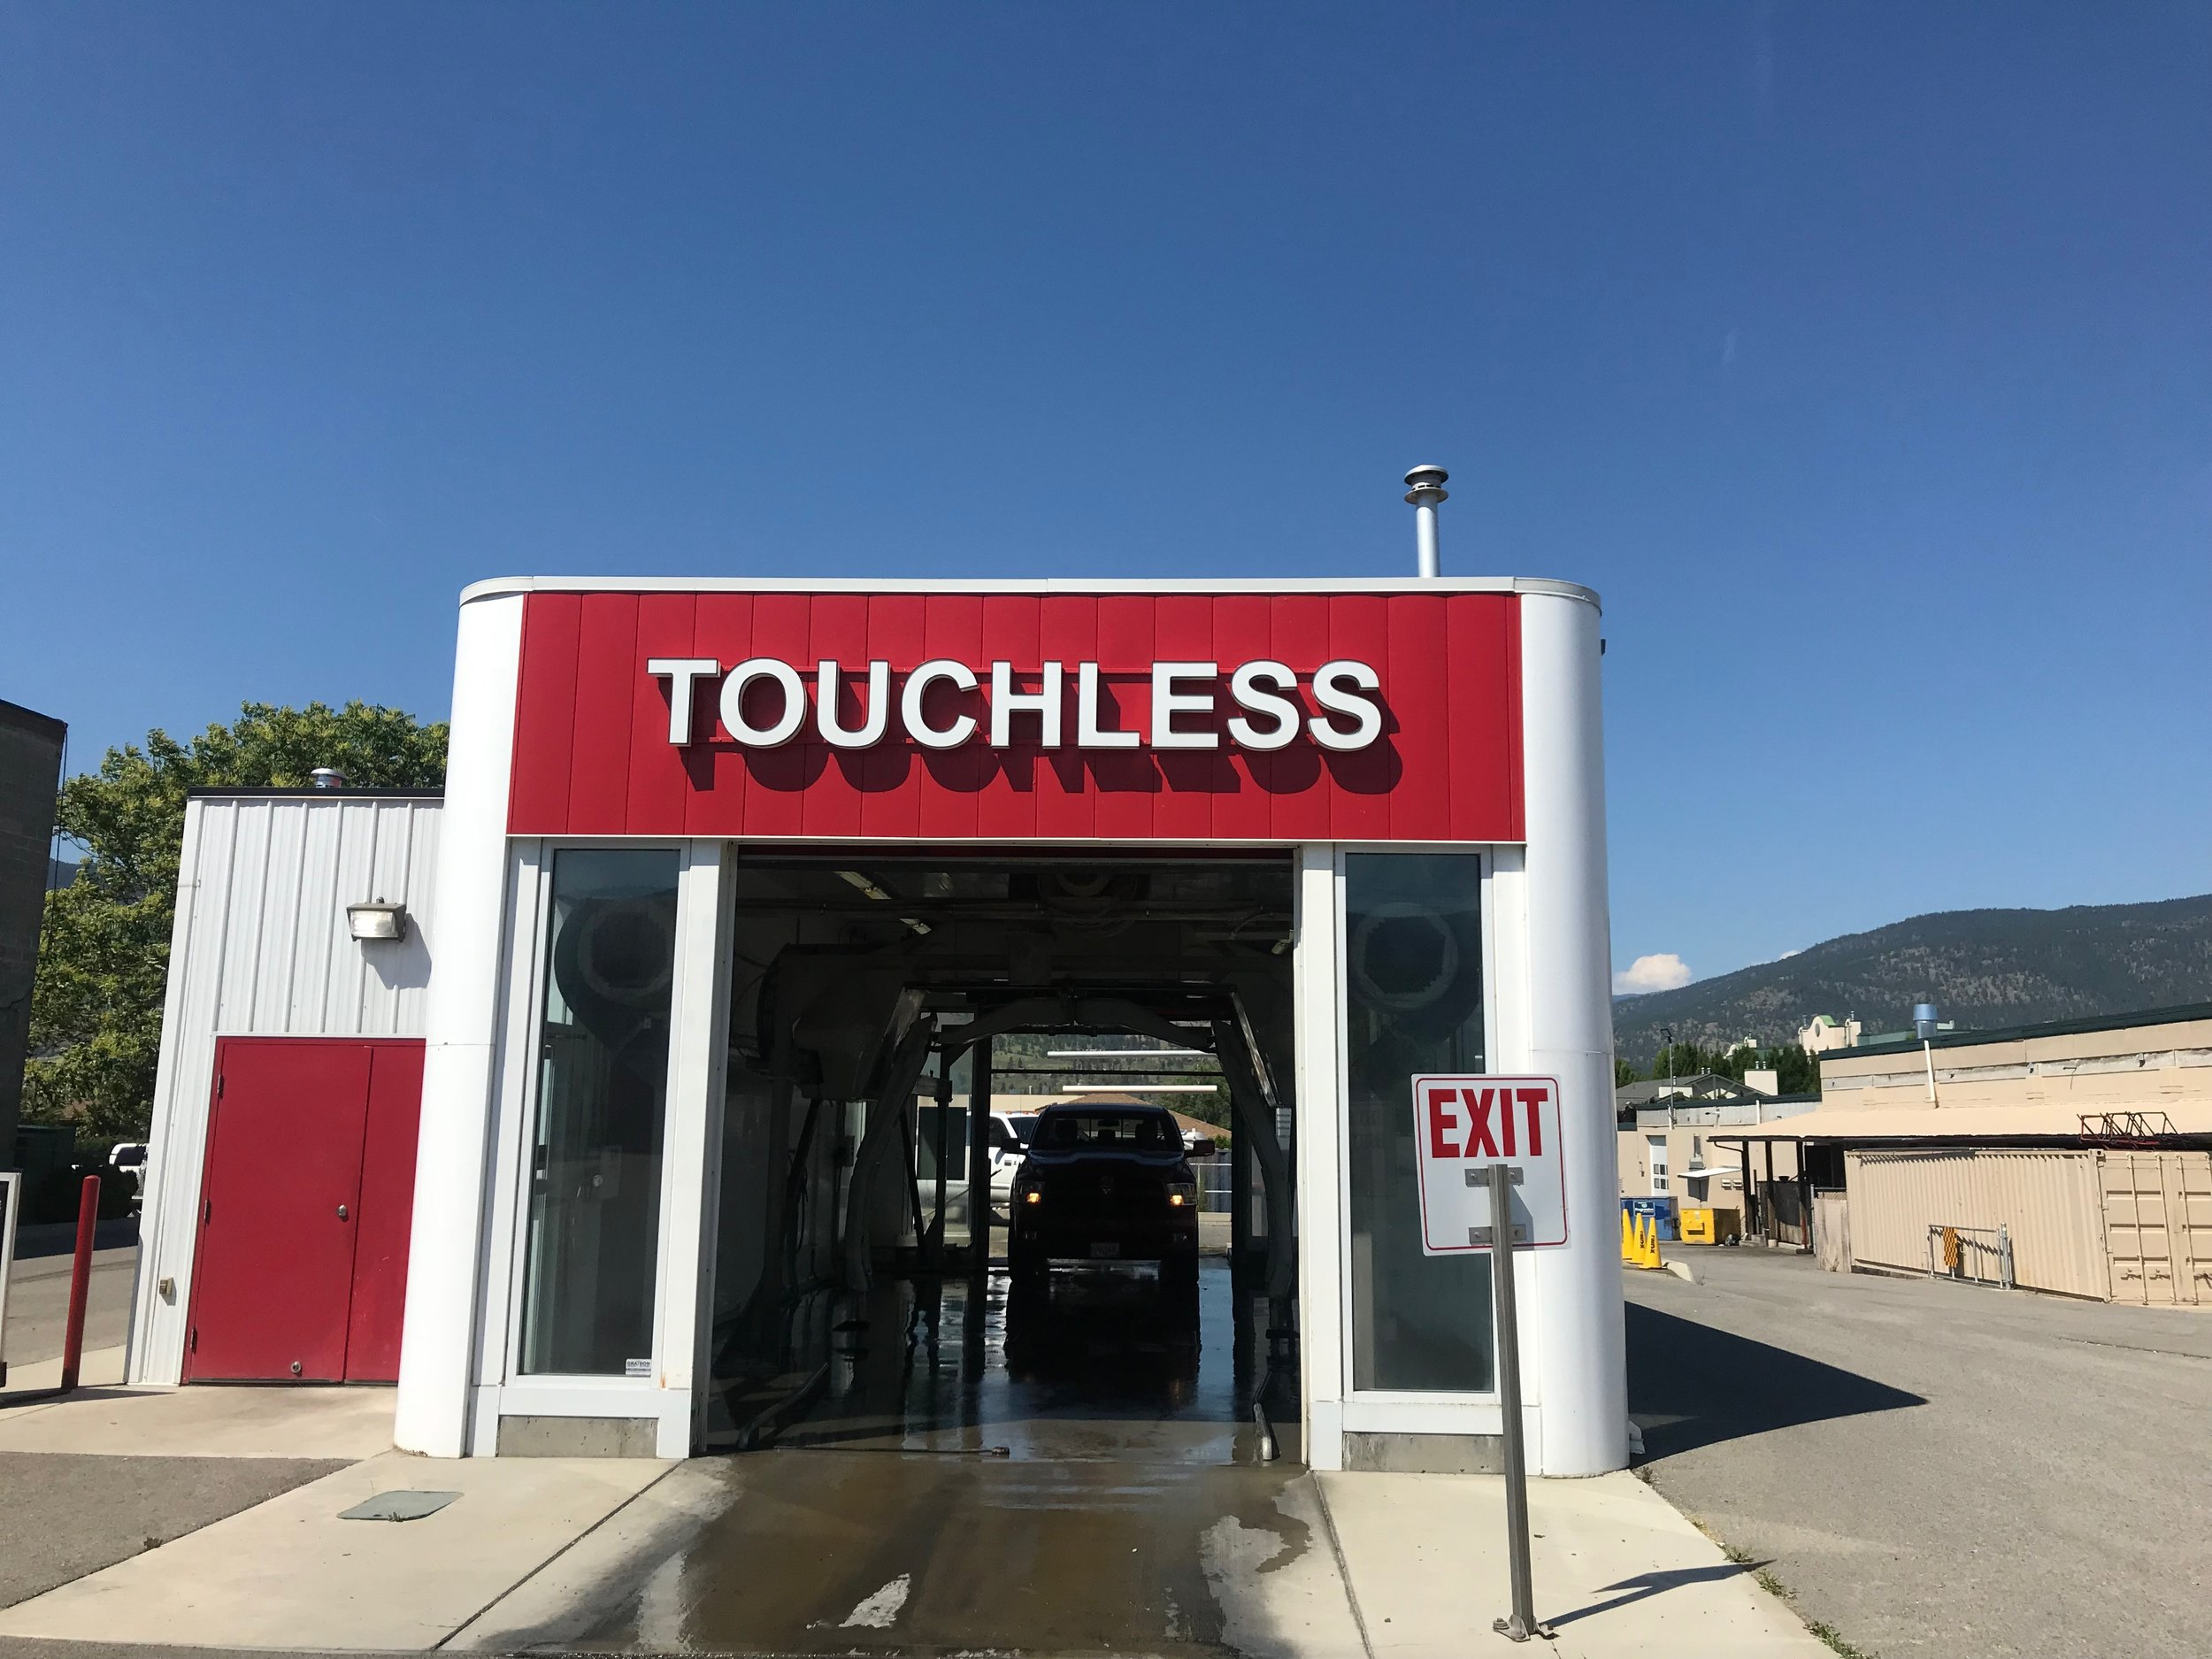 This is the best wash system on the market. Touchless so you don't have to worry about scratching that new ride, but aggressive chemicals to make sure the job gets done right.